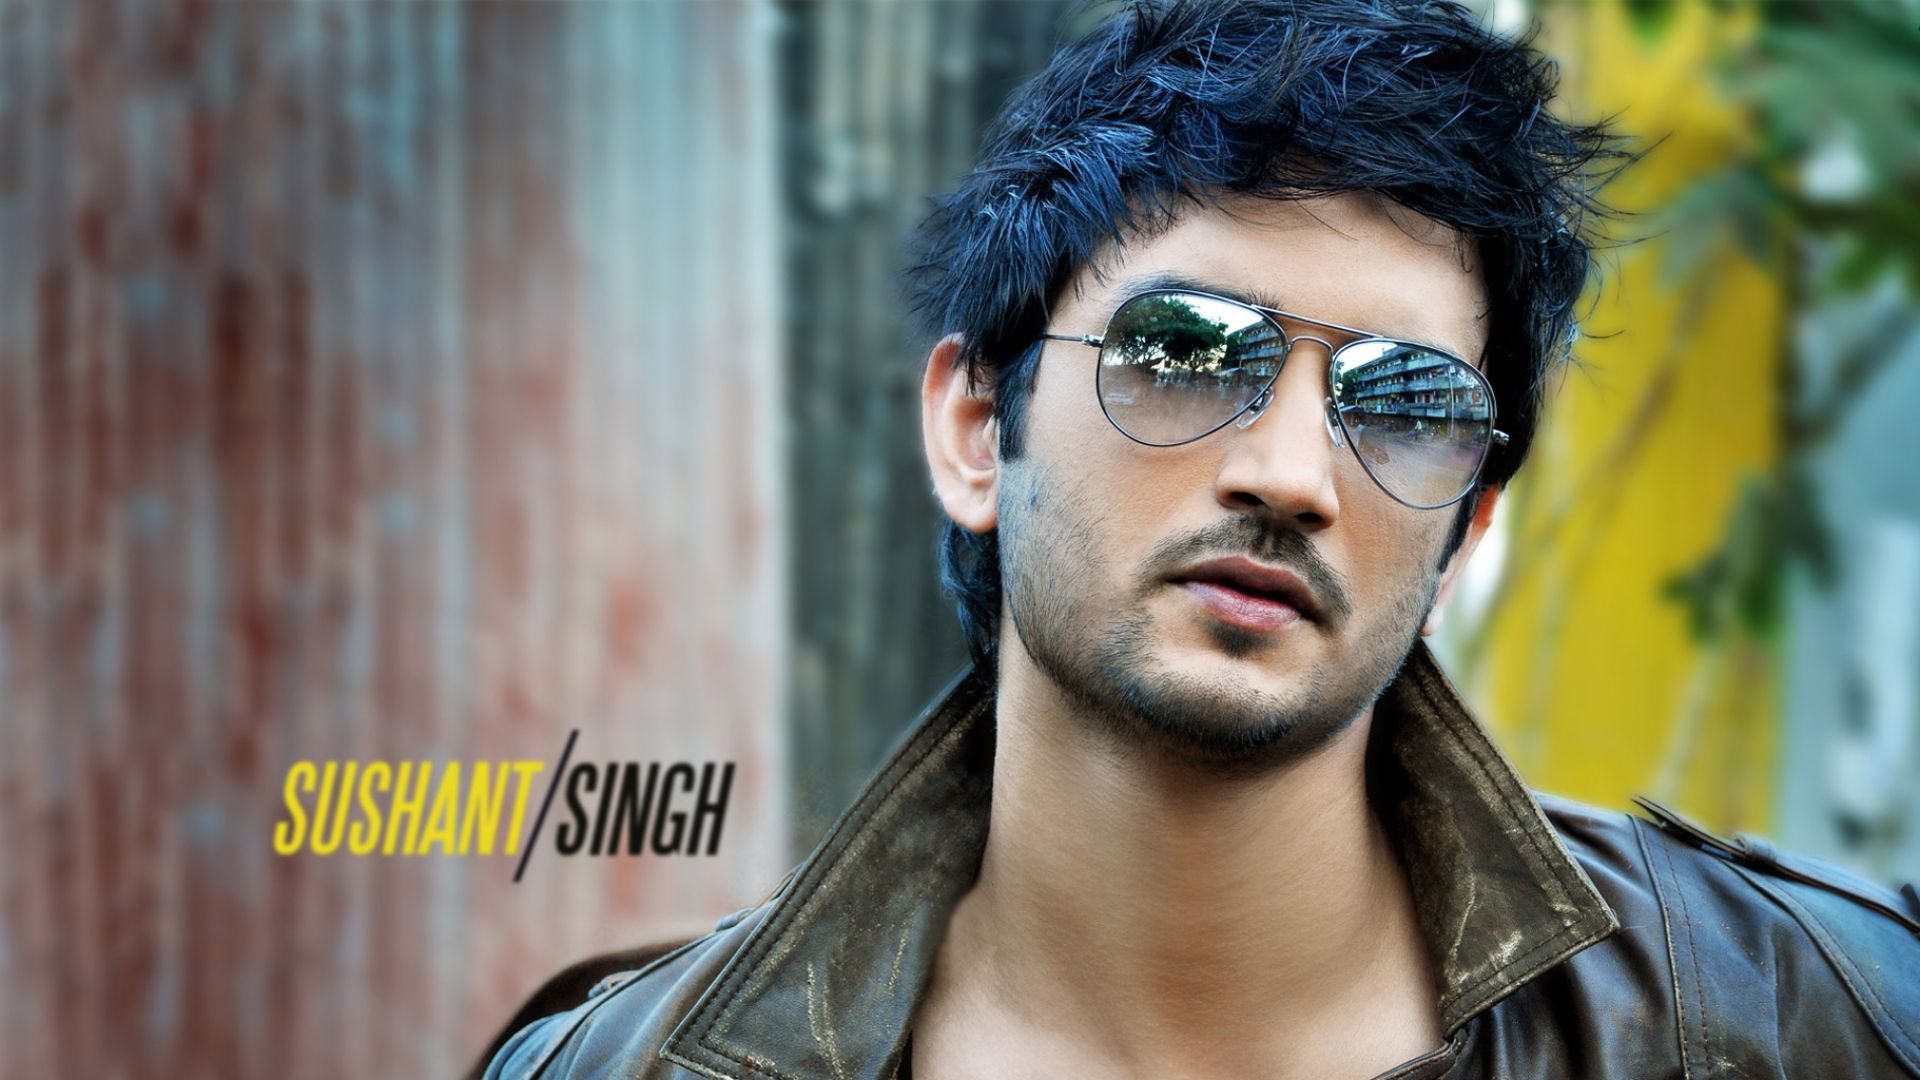 1920x1080 Sushant Singh Rajput Dashing Look wallpapers 1080P